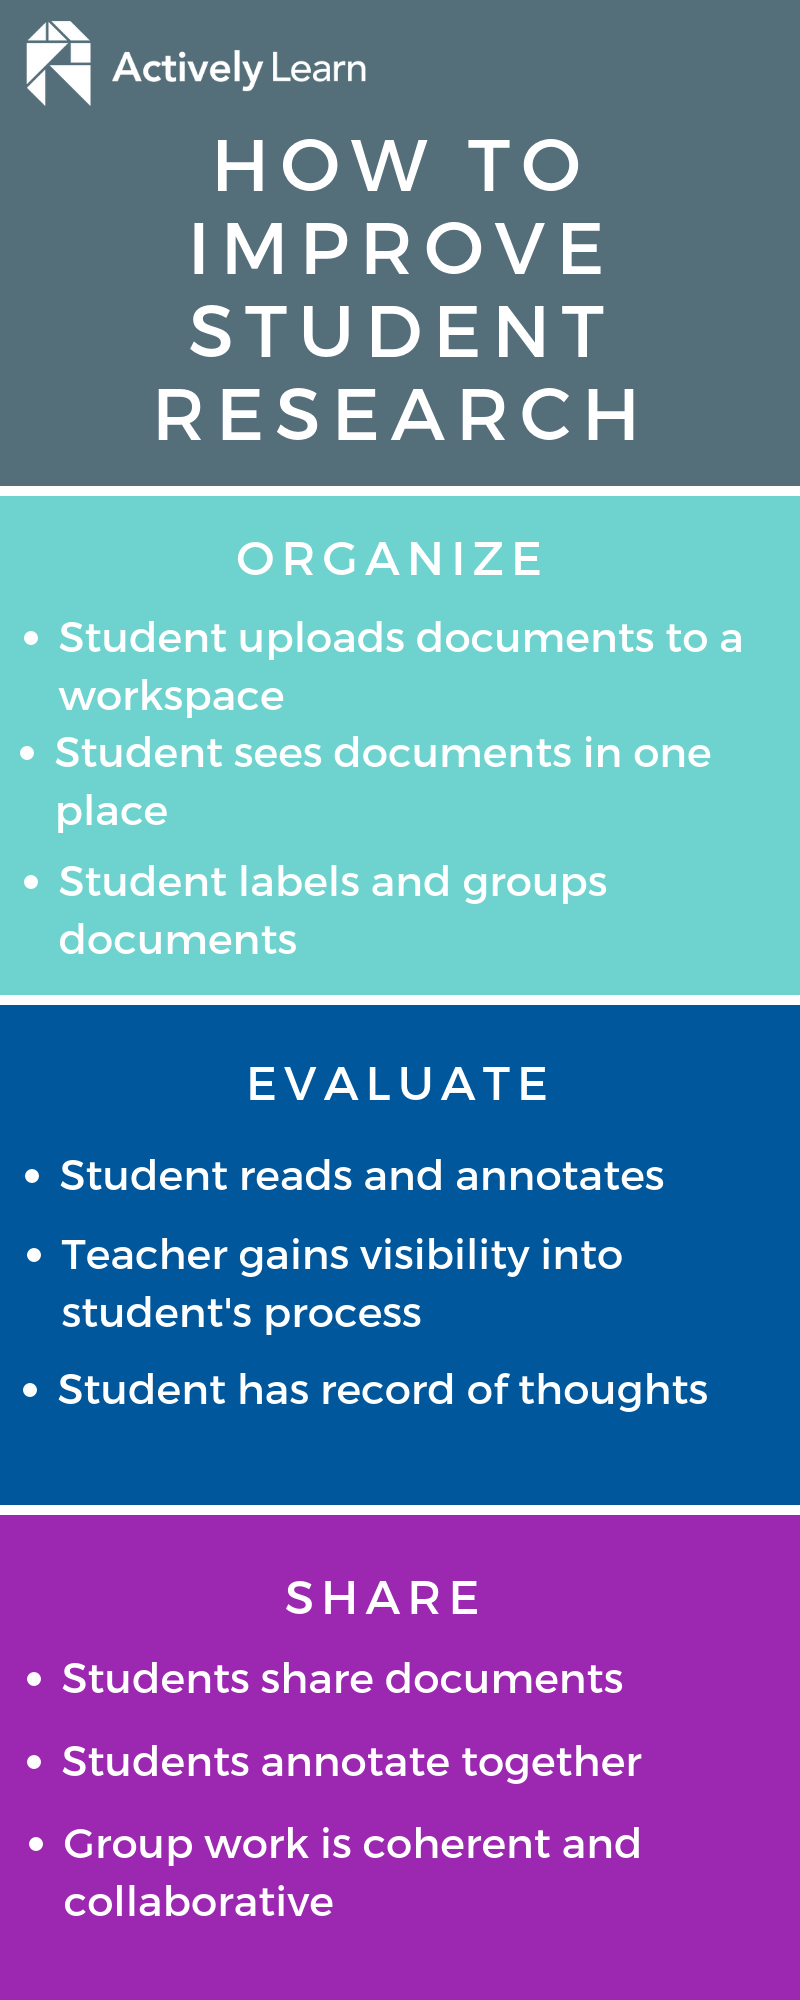 How to Improve Student Research